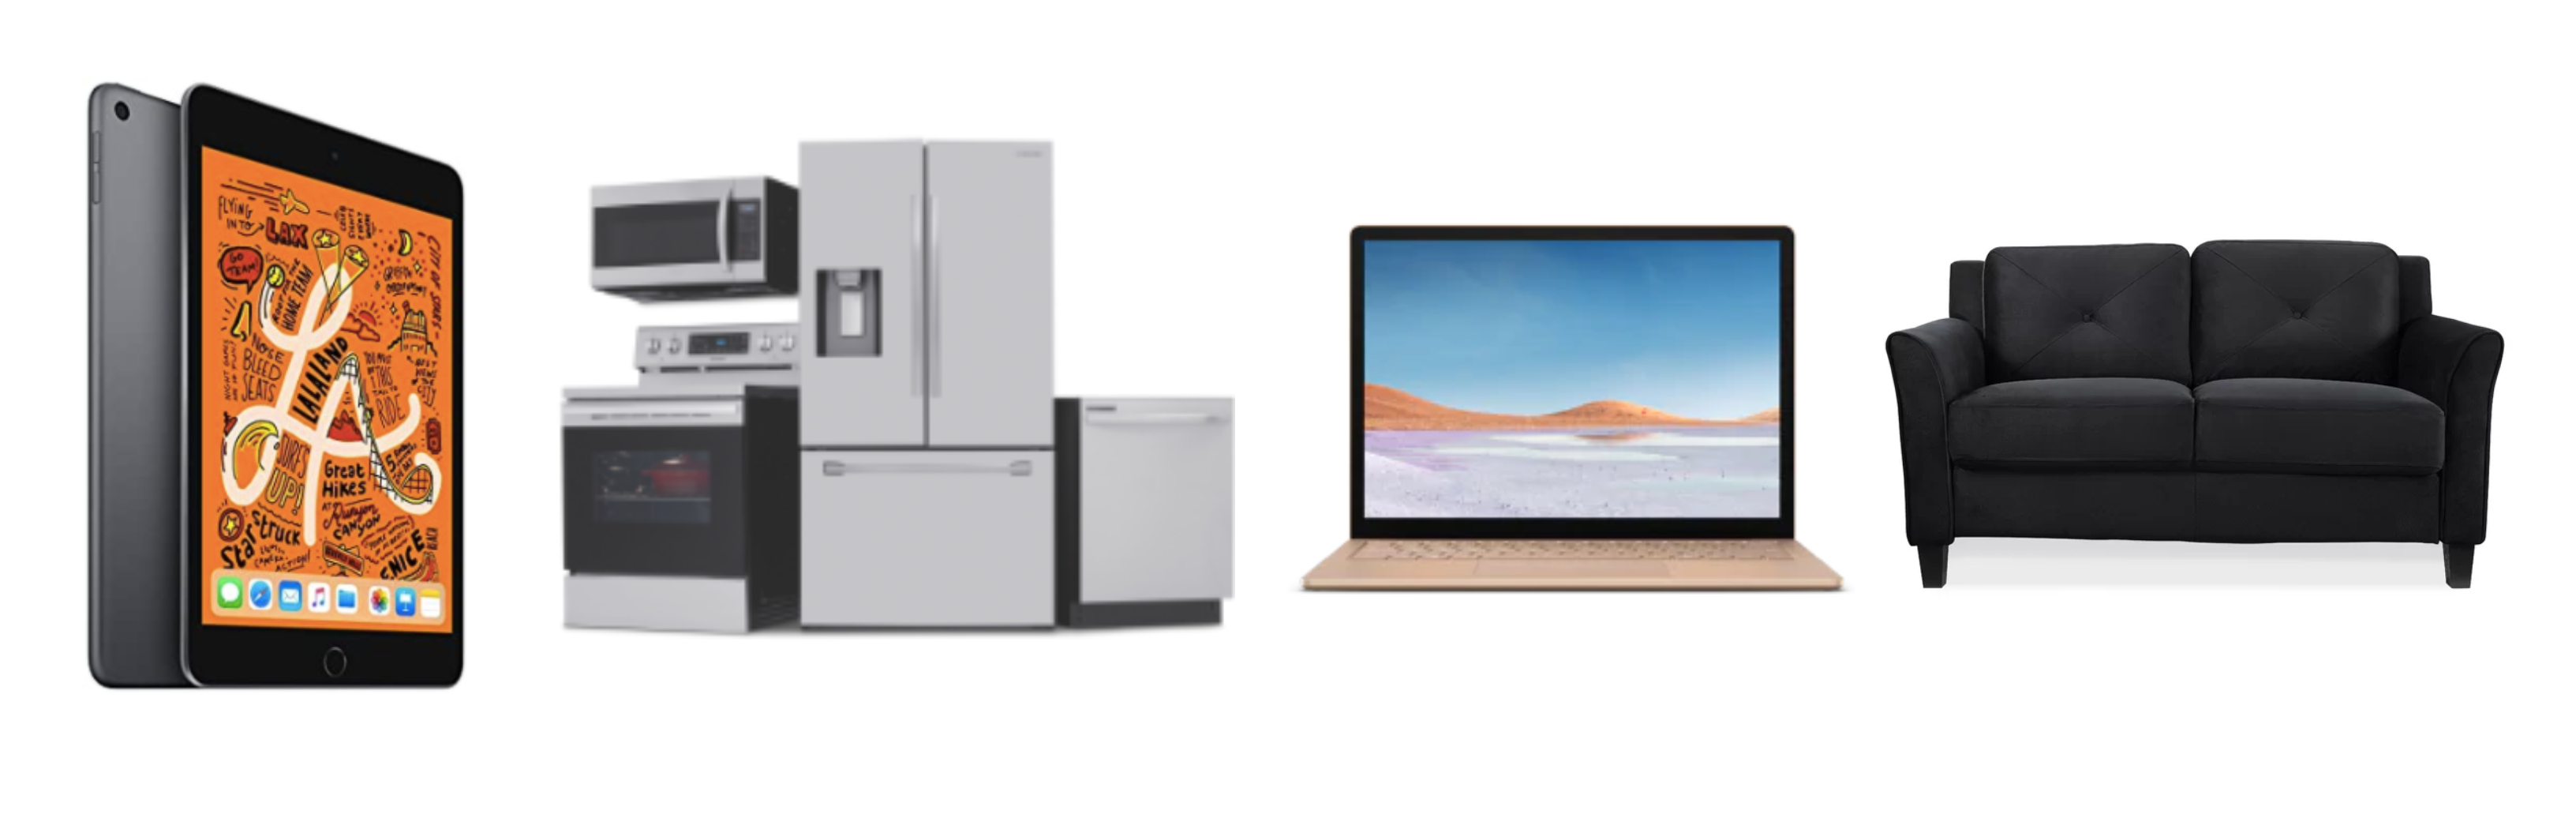 Labor Day 2020 Sales On Furniture Laptops And Mattresses From Amazon Wayfair Best Buy And More Cleveland Com